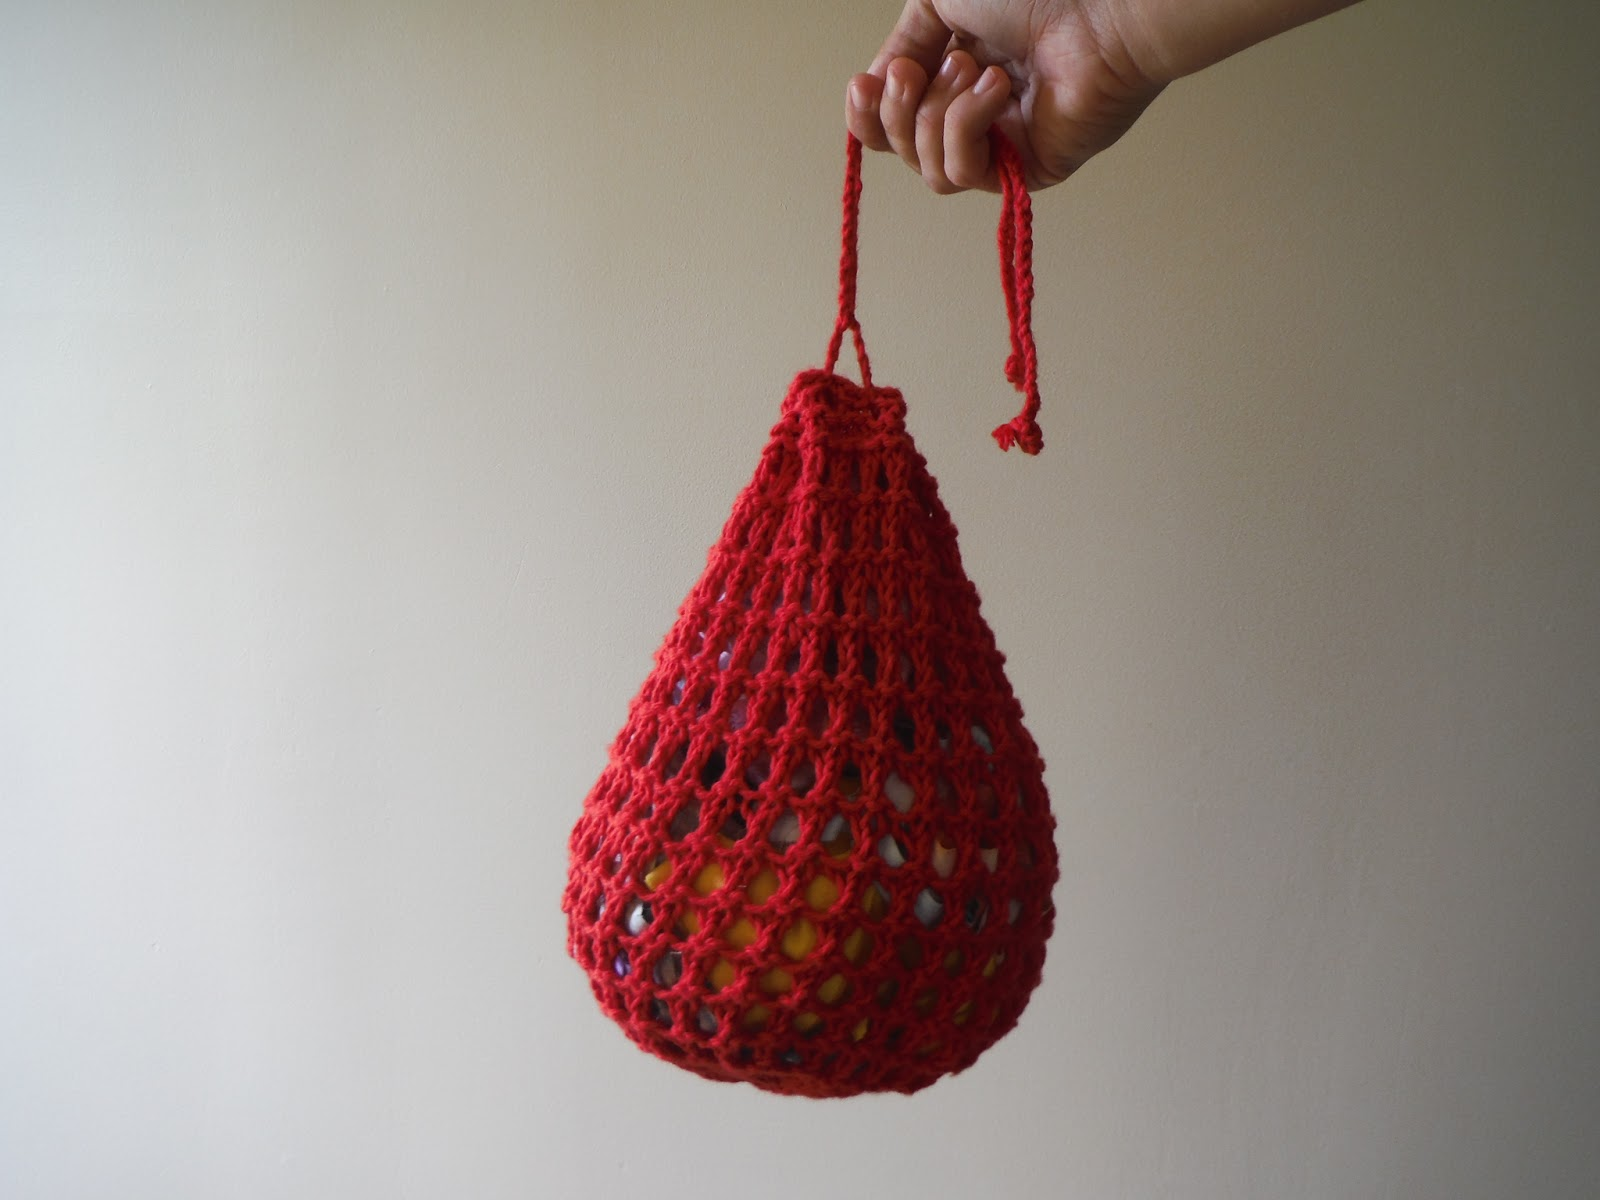 Knitting Pattern For A String Bag : The Lil Hayseed Blog: Knitted Drawstring Pouch Pattern